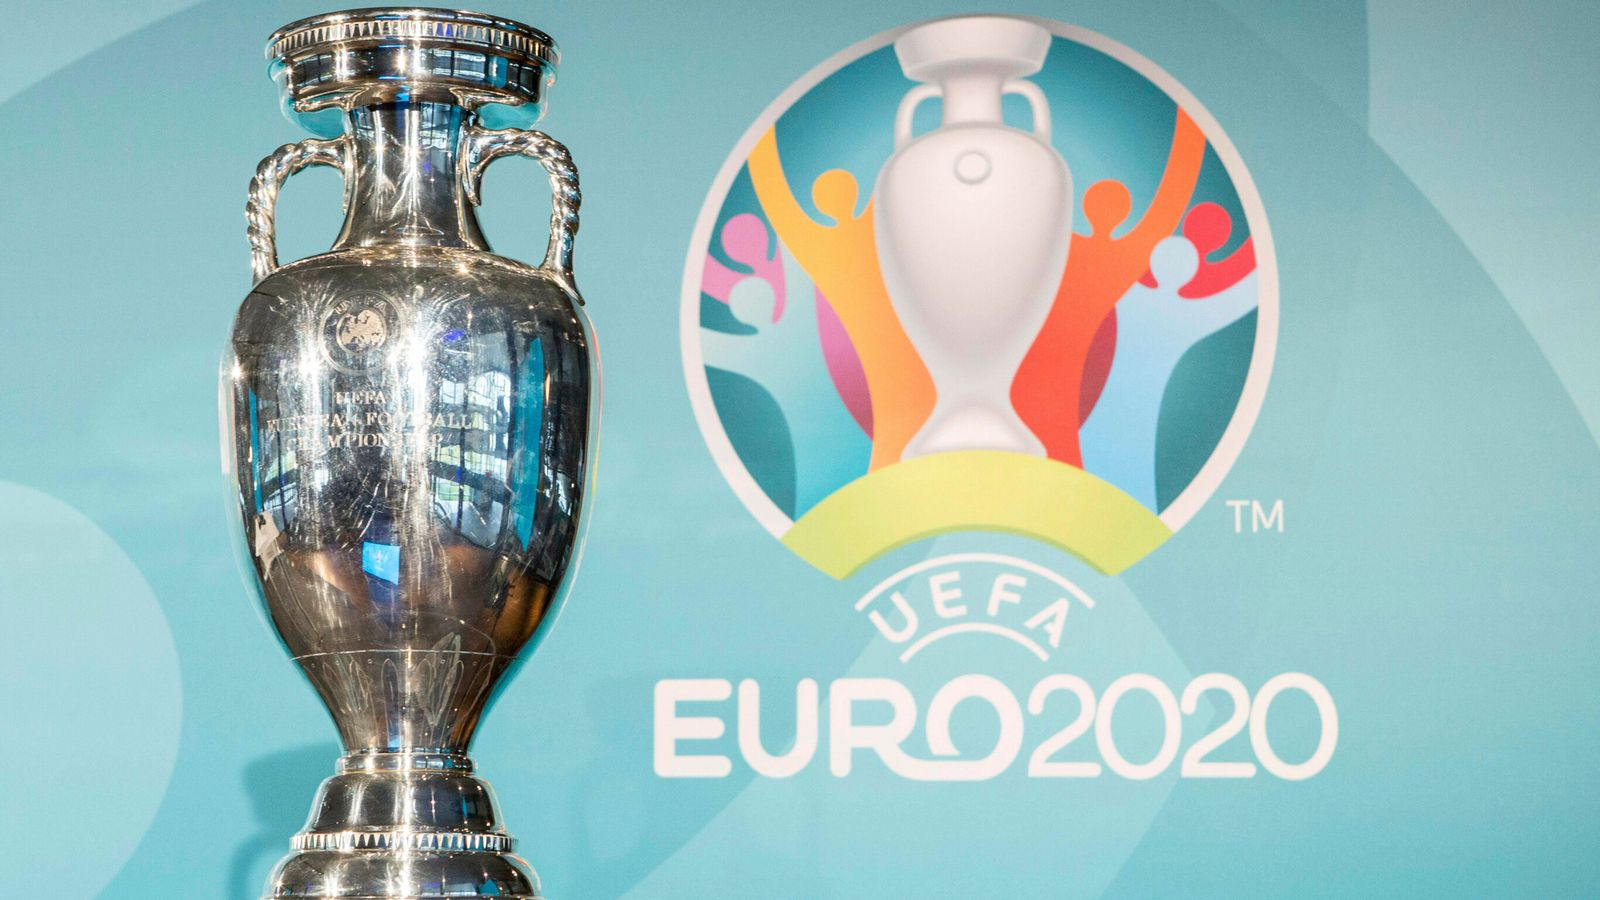 PM offers Britain's stadiums for all of the European Championship with eyes on 2030 World Cup bid